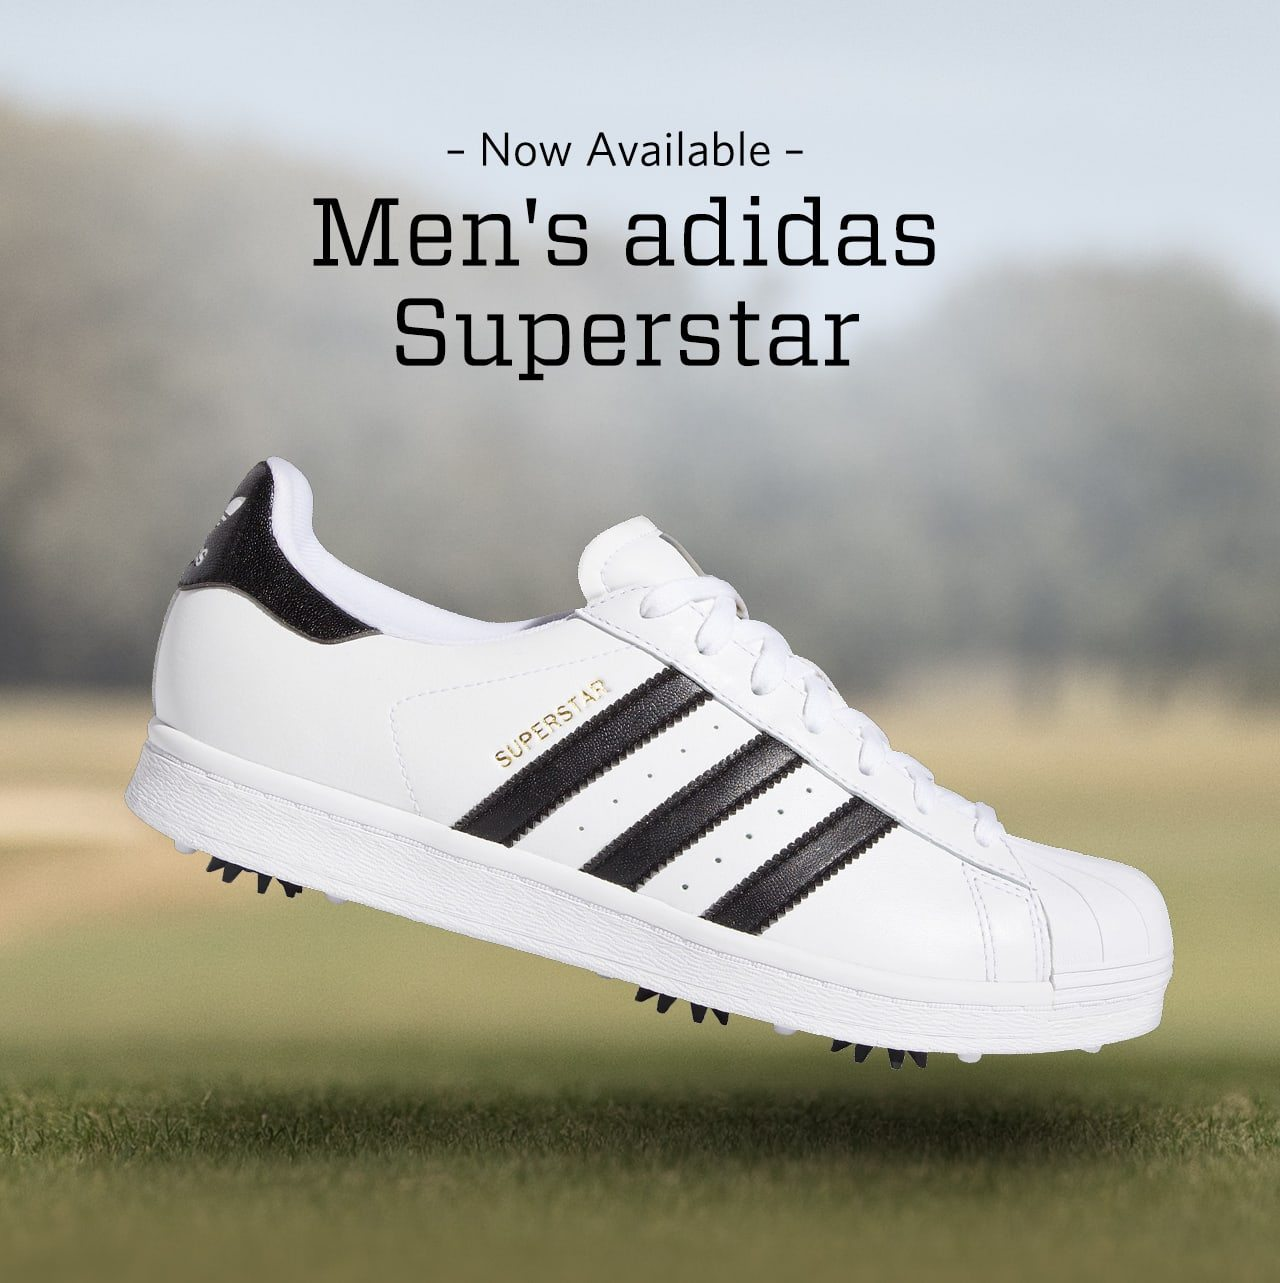 Now available. Men's adidas superstar.